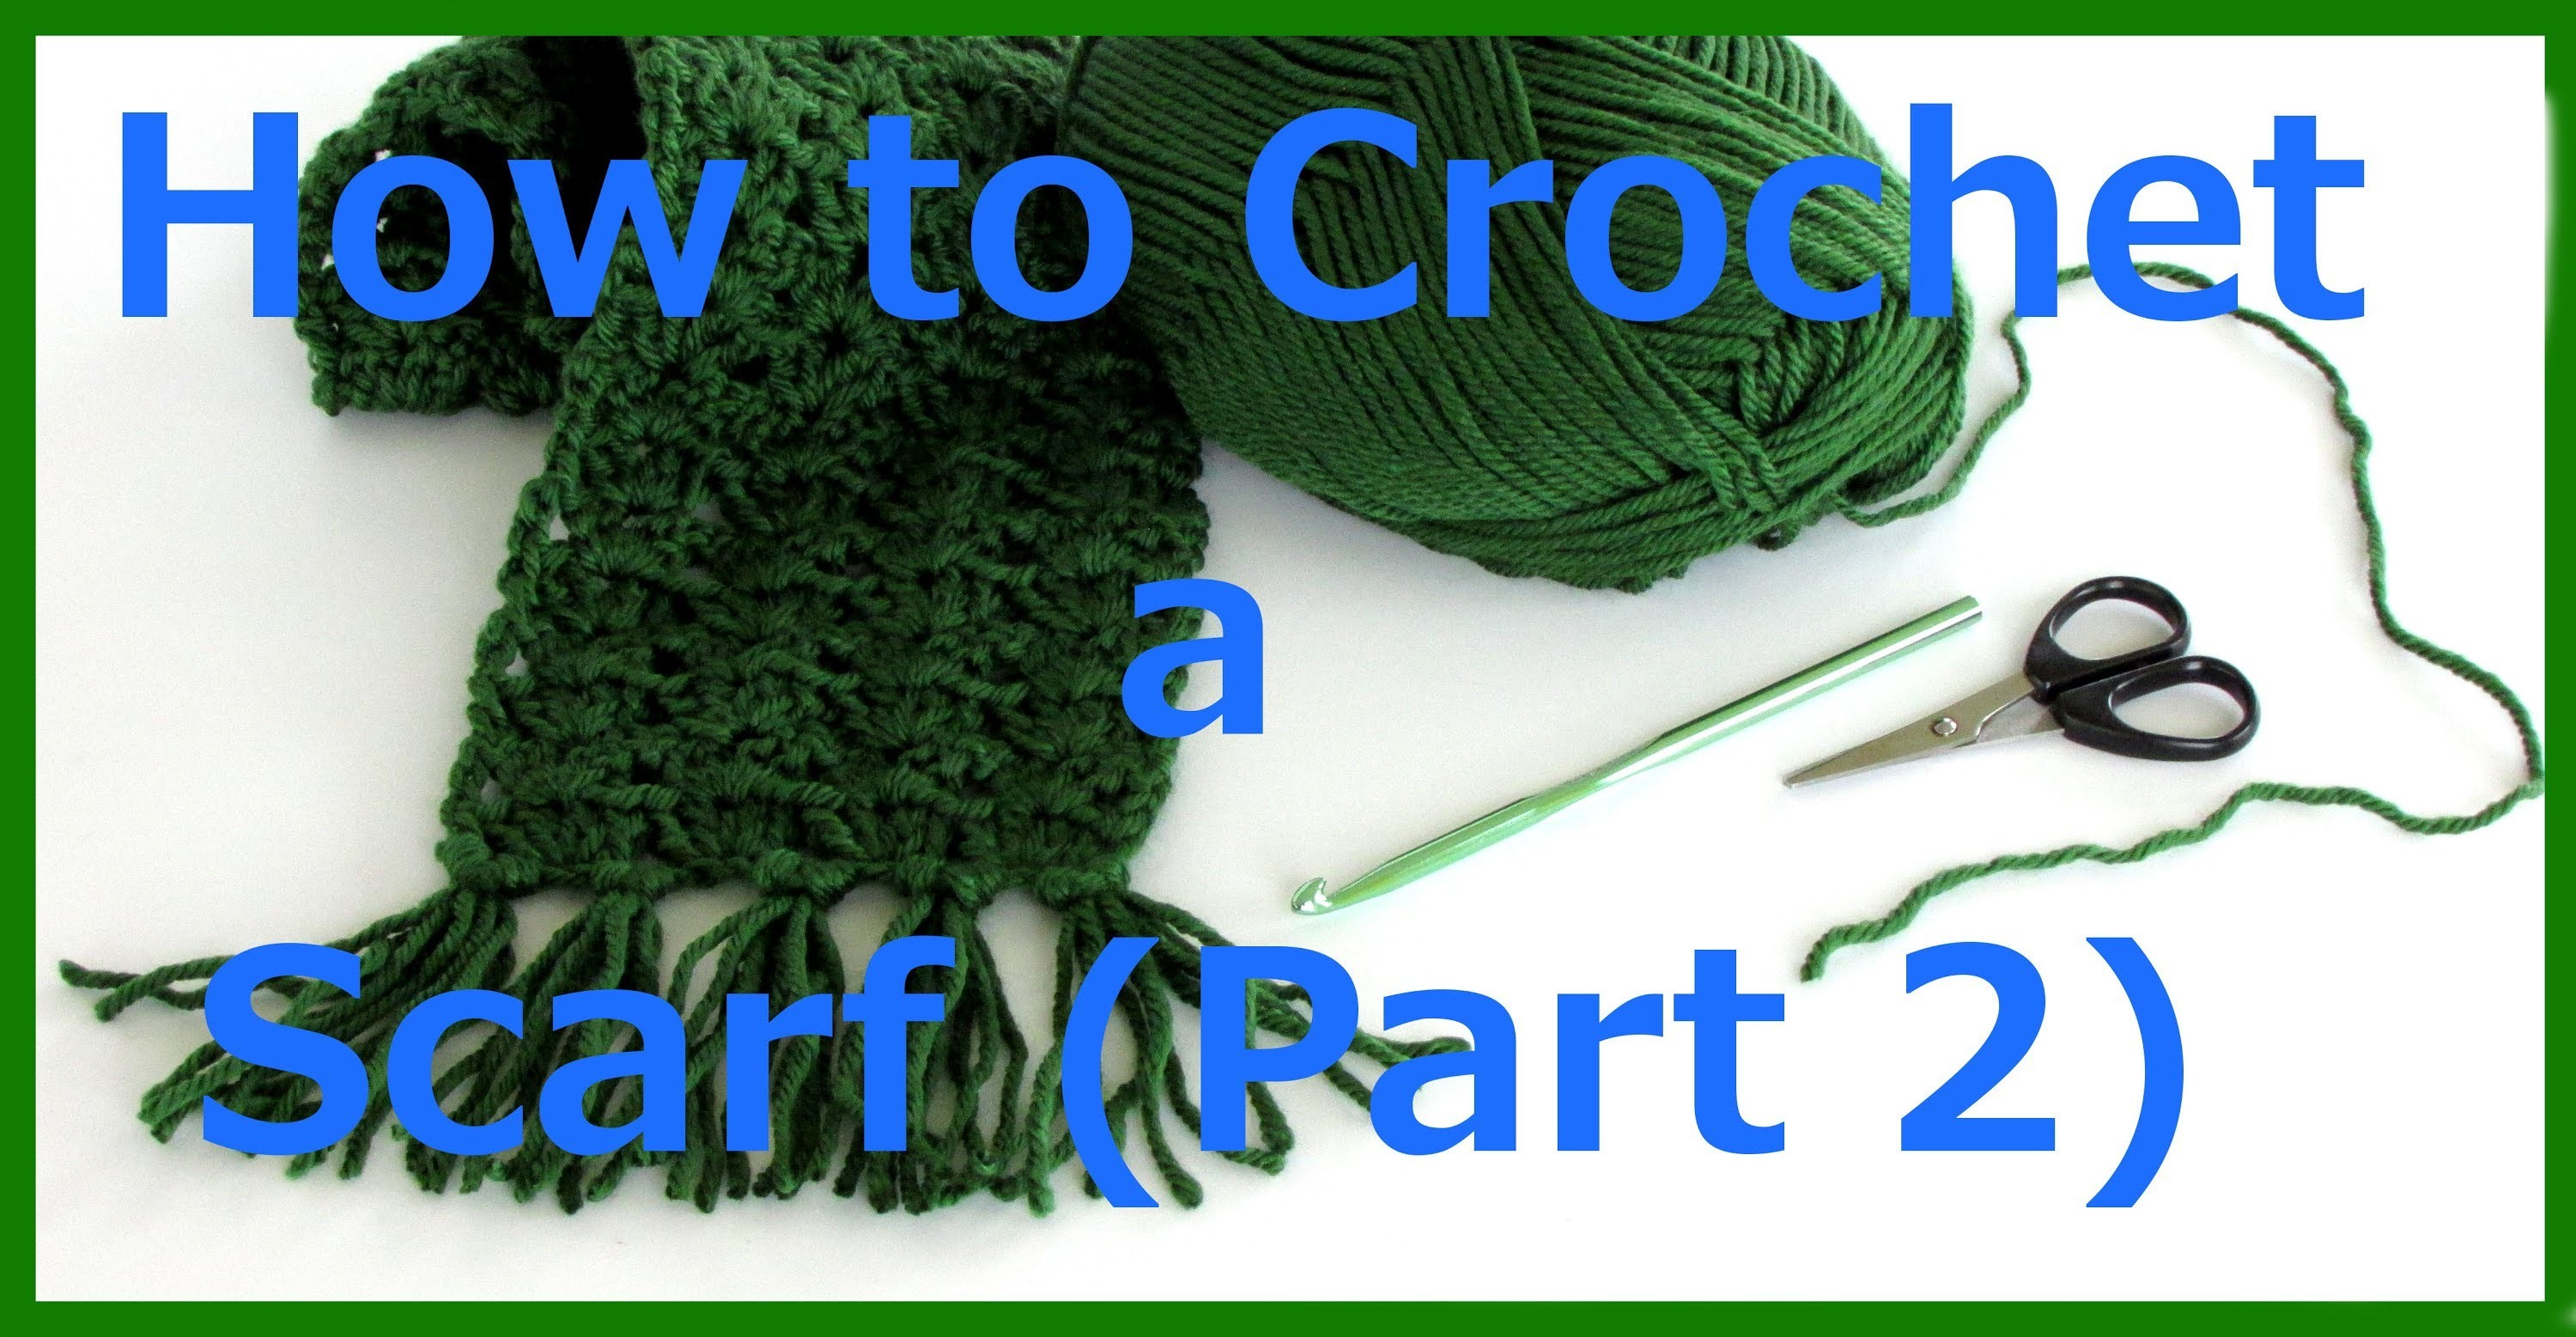 How to Crochet a Scarf tutorial part 2